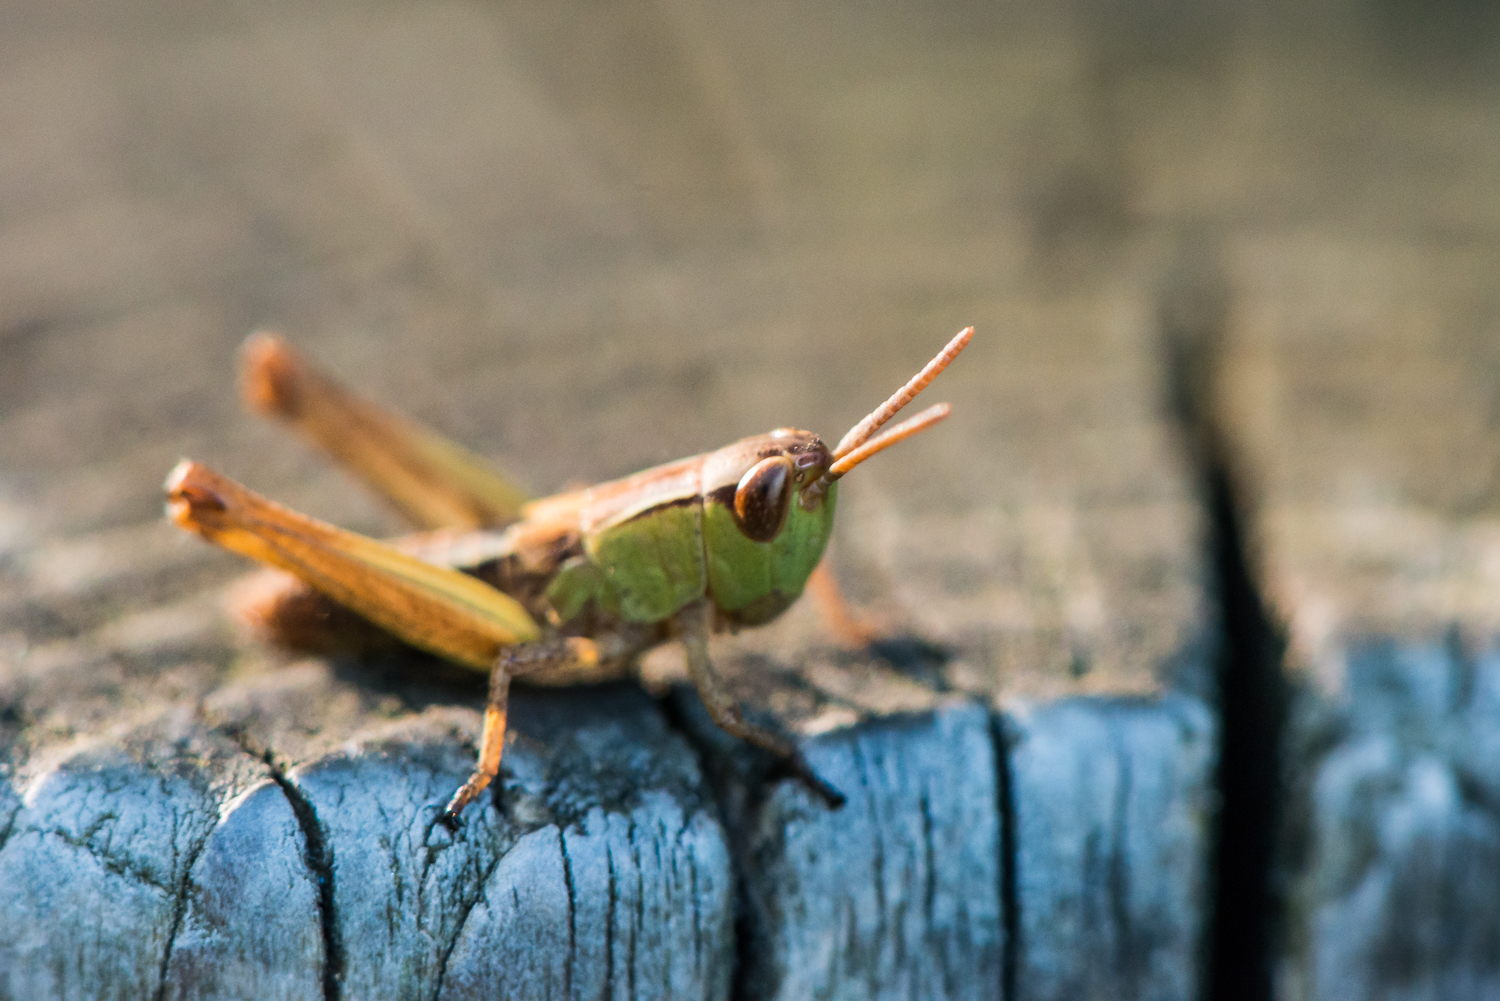 A Meadow Grasshopper